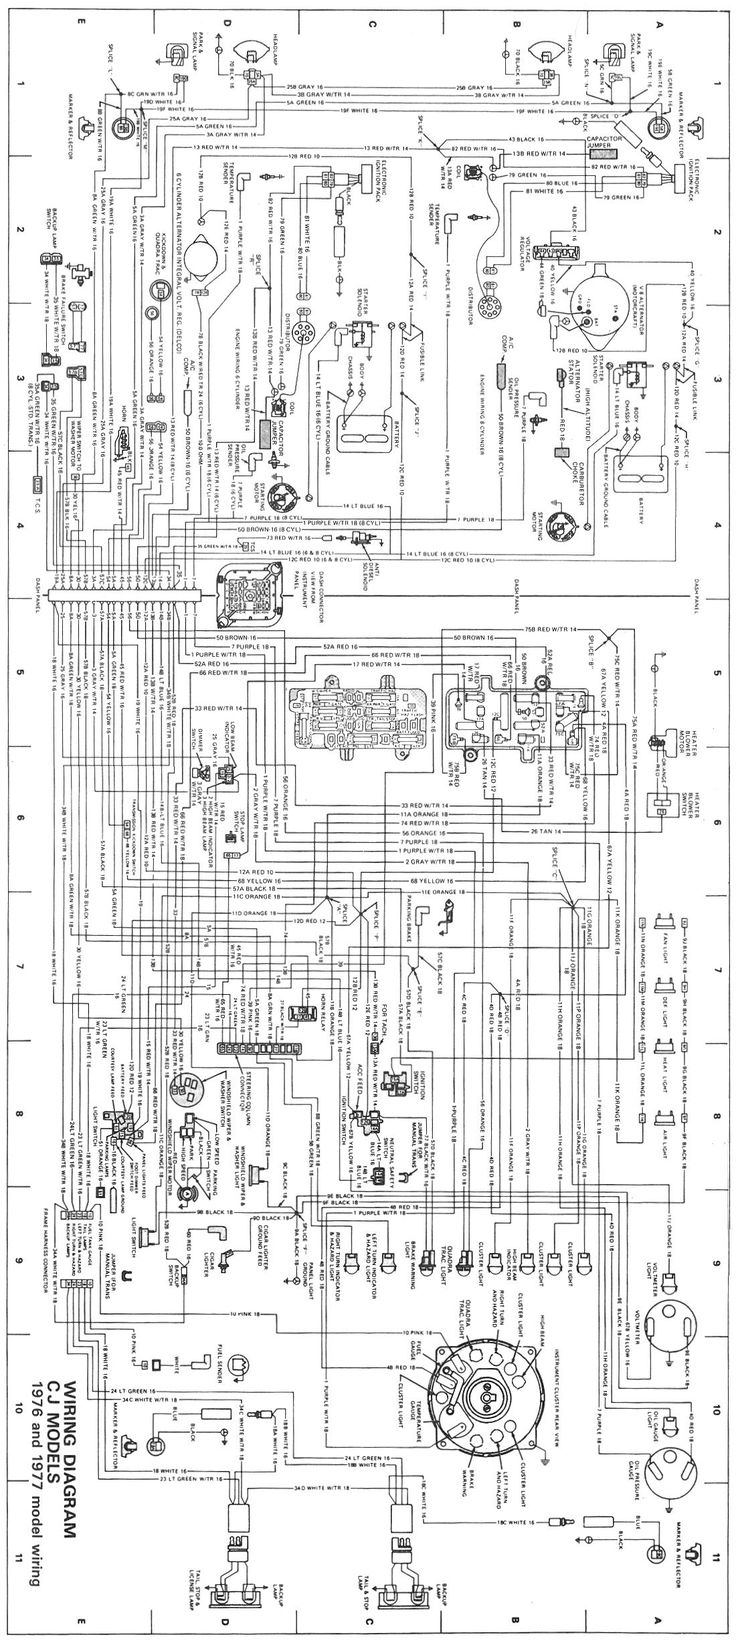 Cj 750 Wiring Diagram Auto Electrical 81 Porsche Alternator Related With